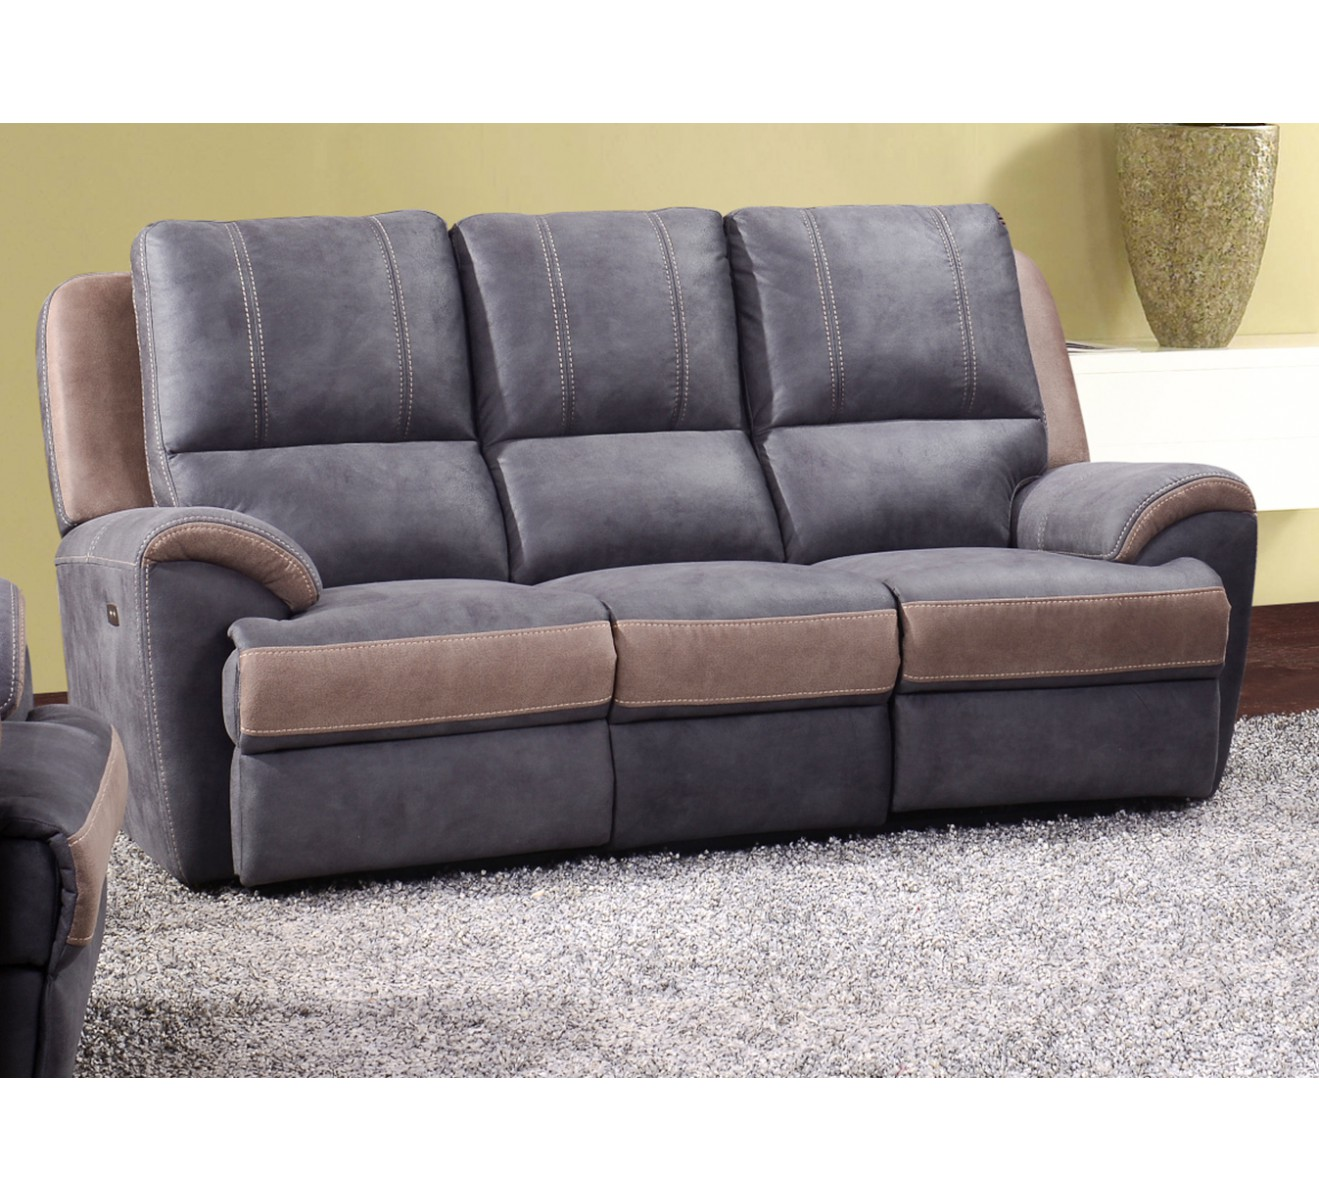 Canap relax lectrique gris 3 places ax relax 39 6810 for Canape 3 places gris